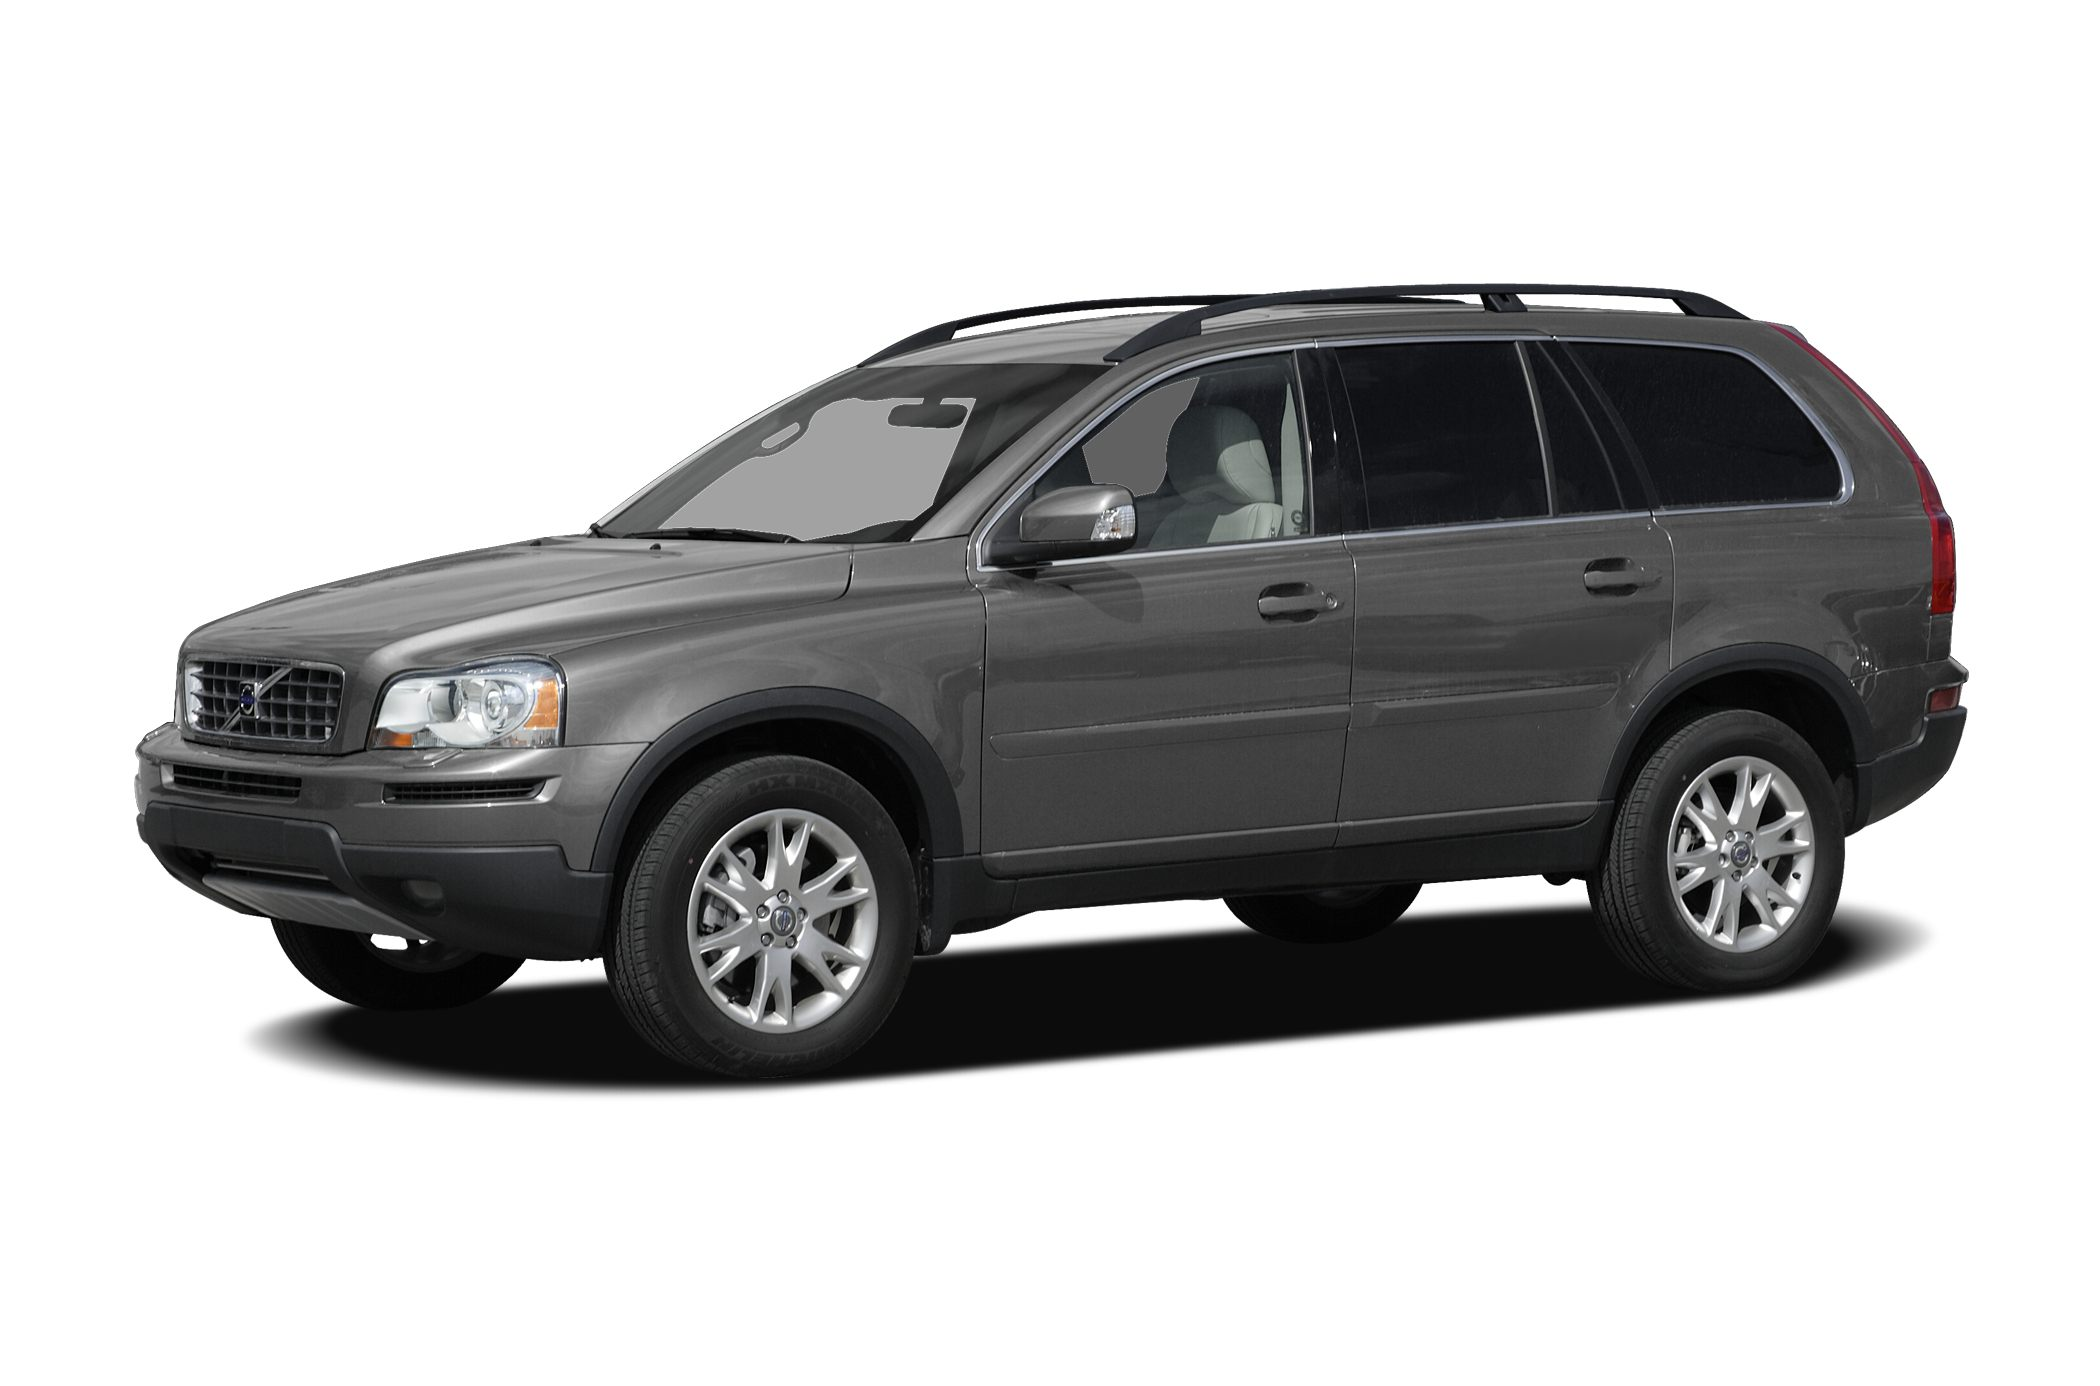 2008 Volvo XC90 3.2 SUV for sale in Hawthorne for $14,988 with 90,517 miles